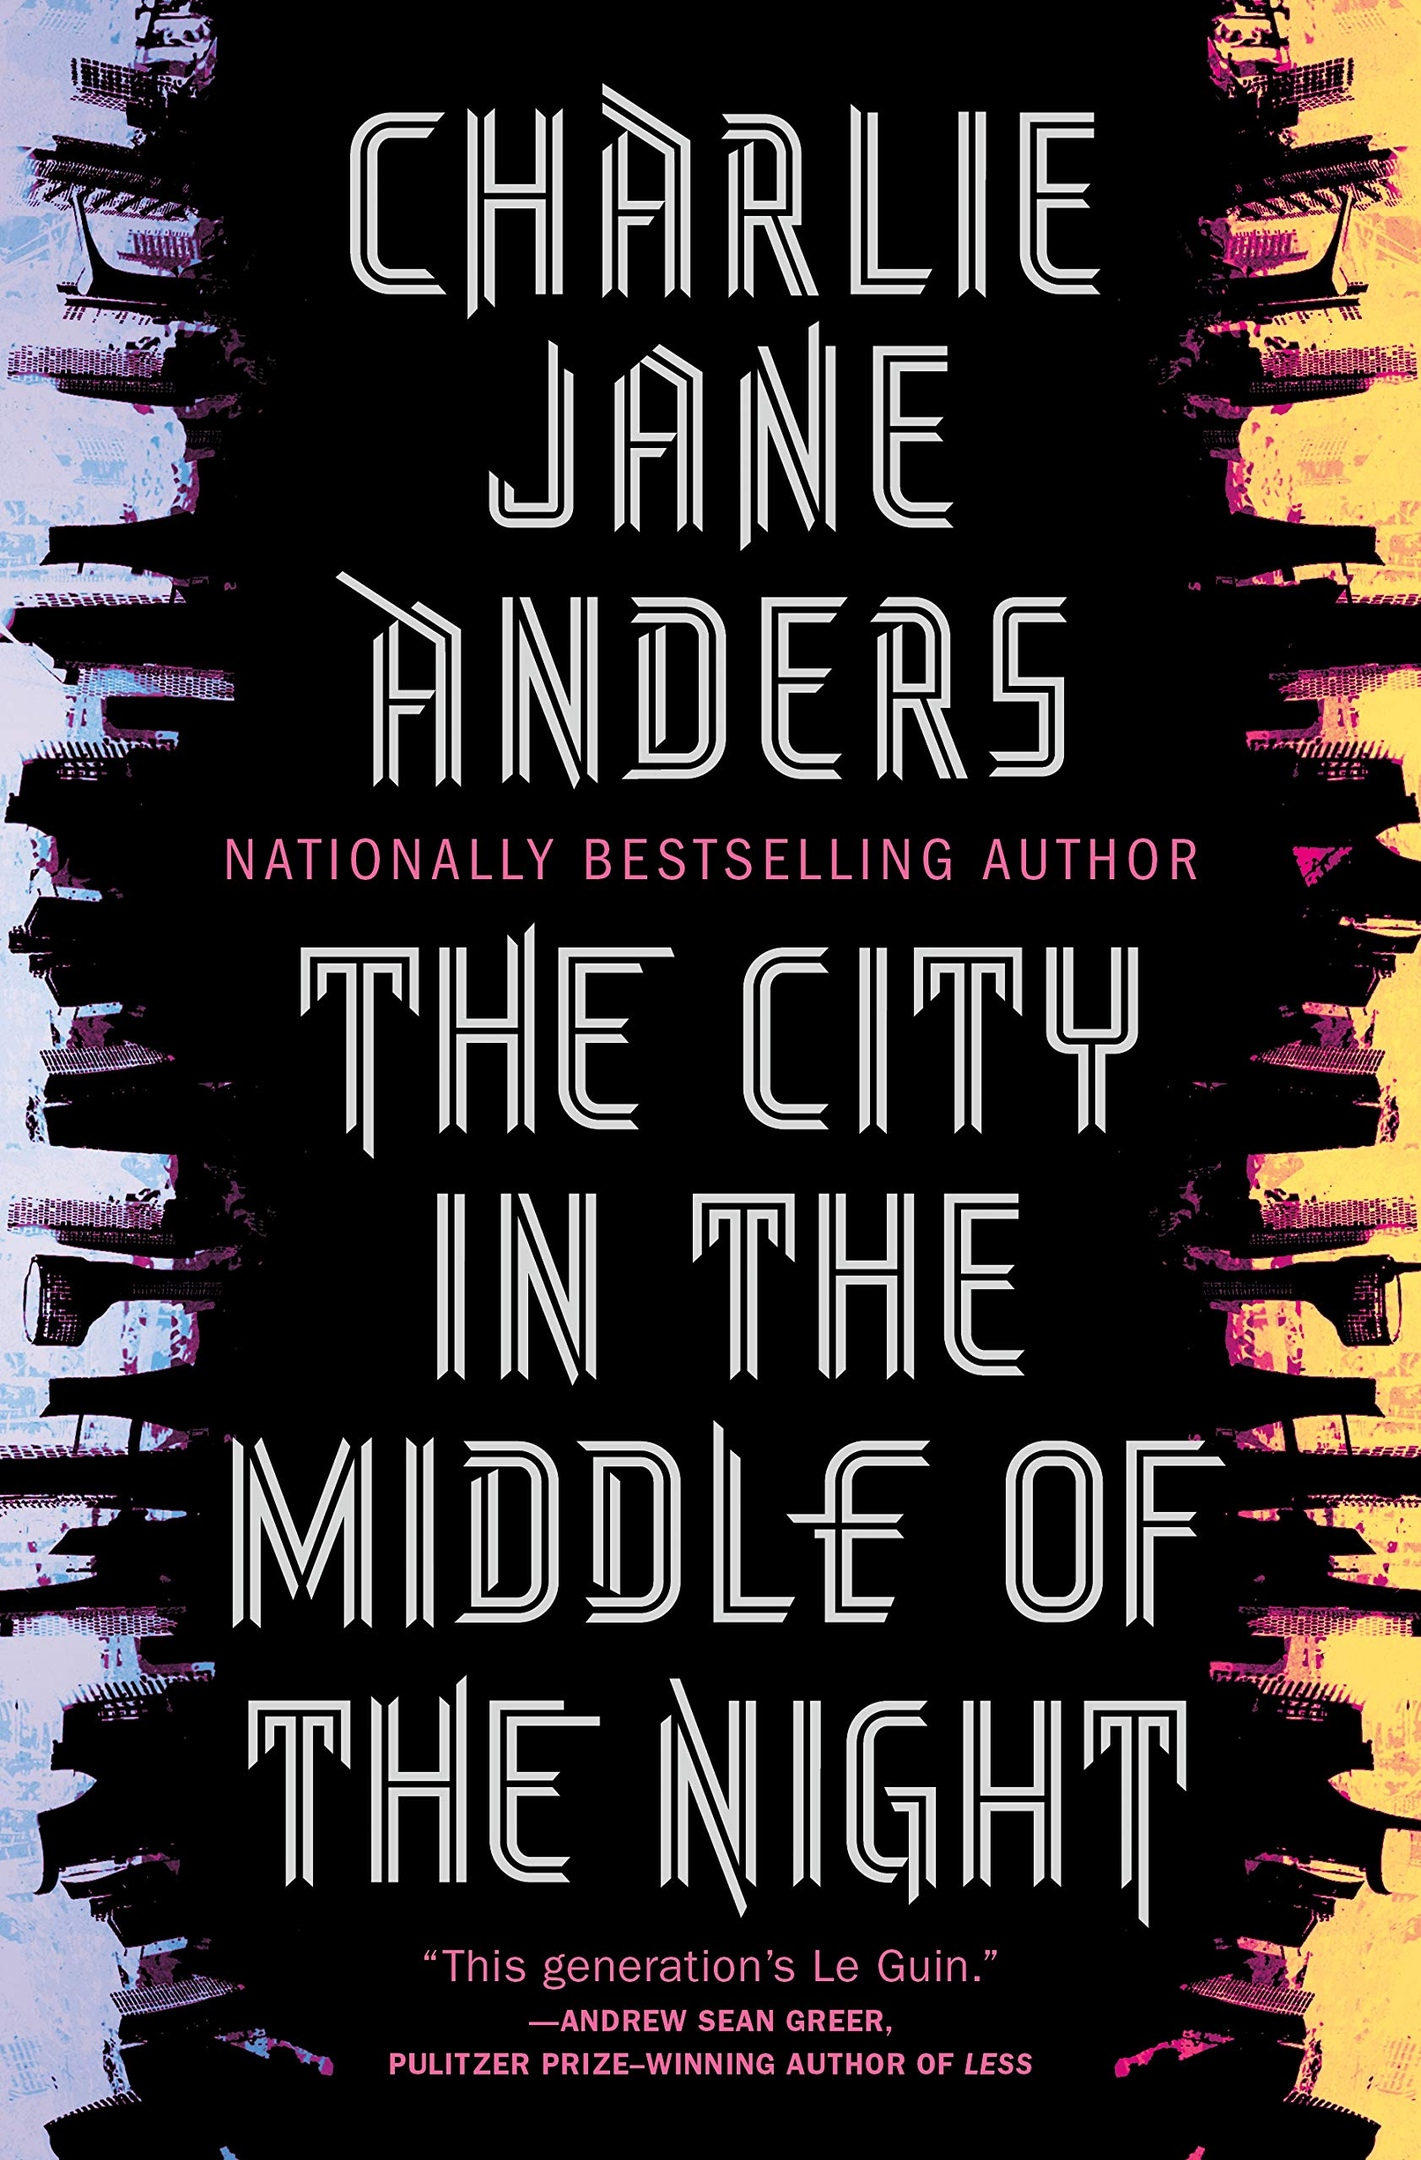 Charlie Jane Anders – The City In The Middle Of The Night